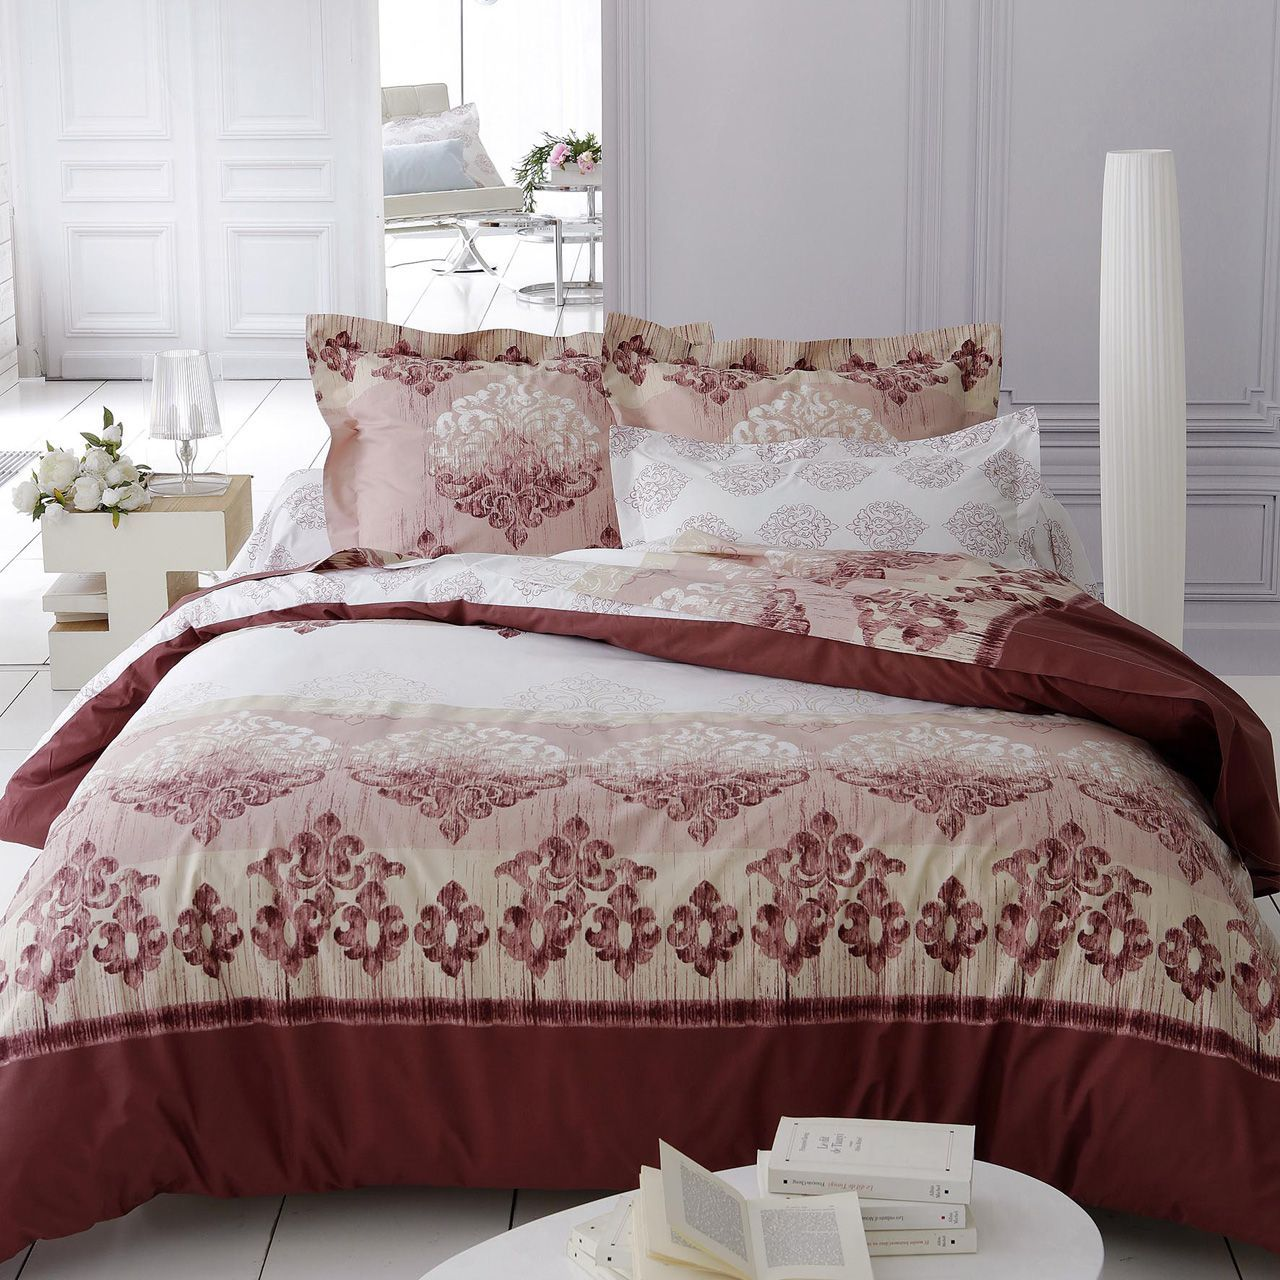 housse de couette v rone marsala rouge motifs baroques percale 140x200. Black Bedroom Furniture Sets. Home Design Ideas